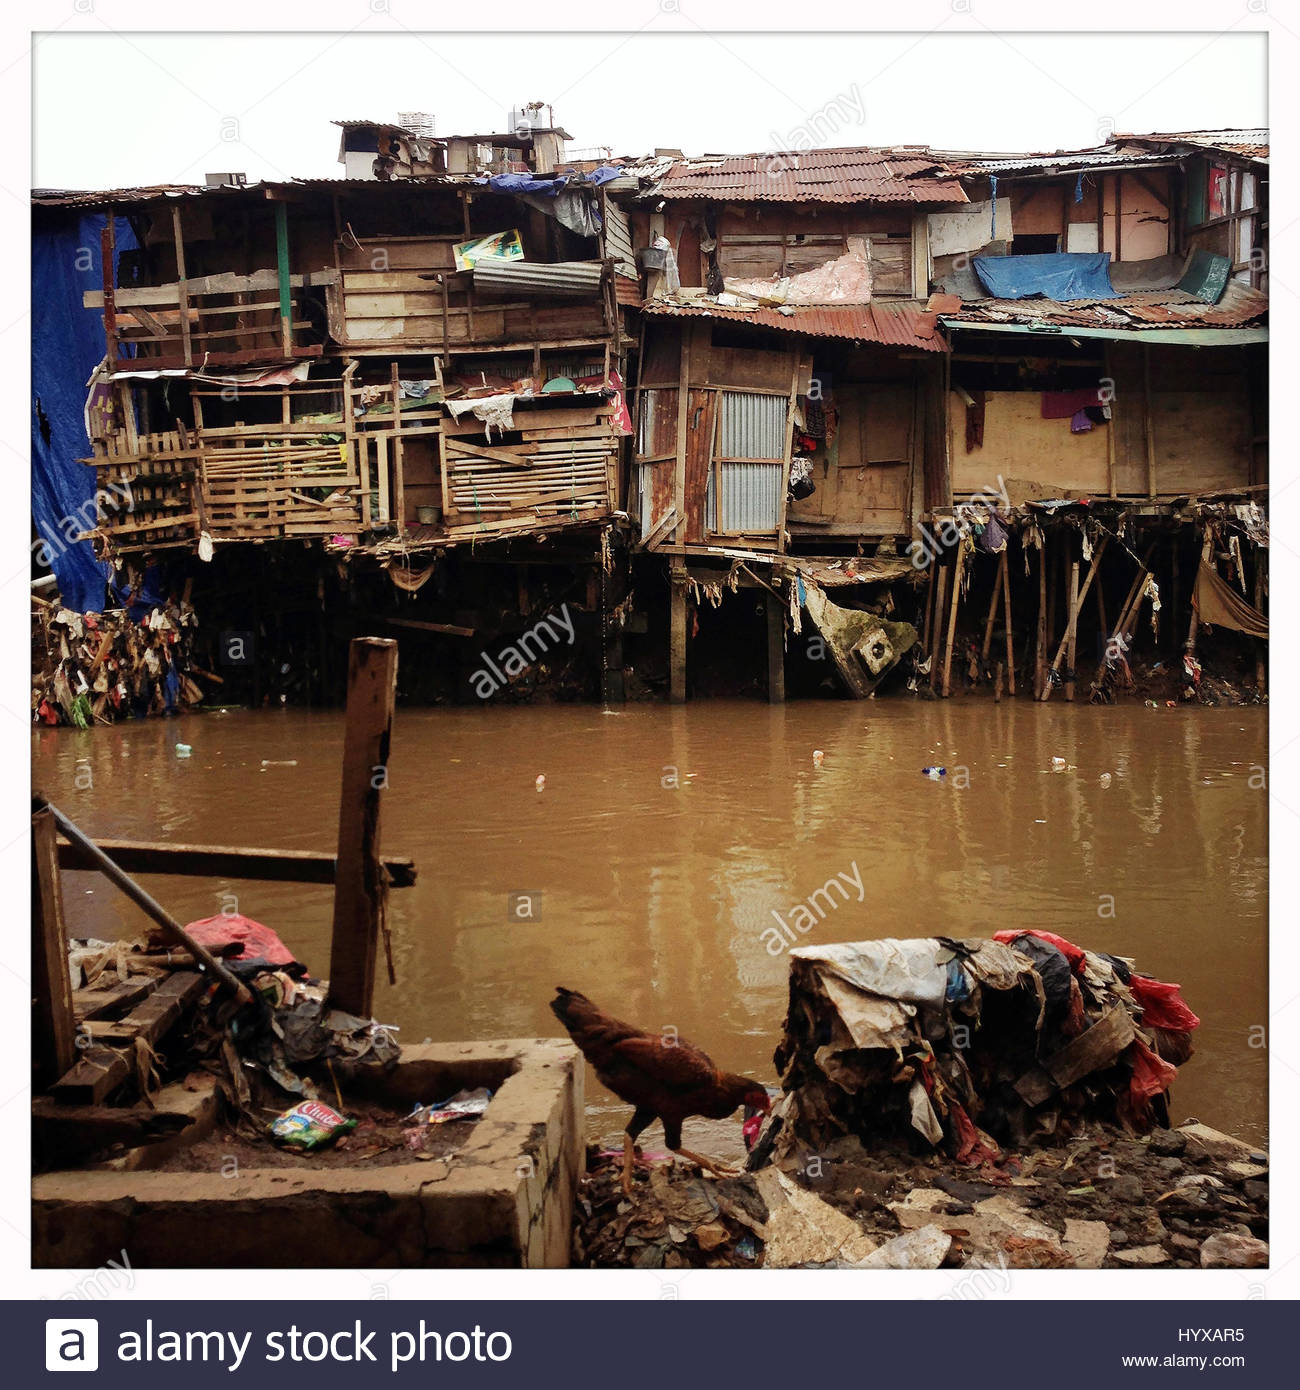 A polluted river runs through slums in central Jakarta. - Stock Image